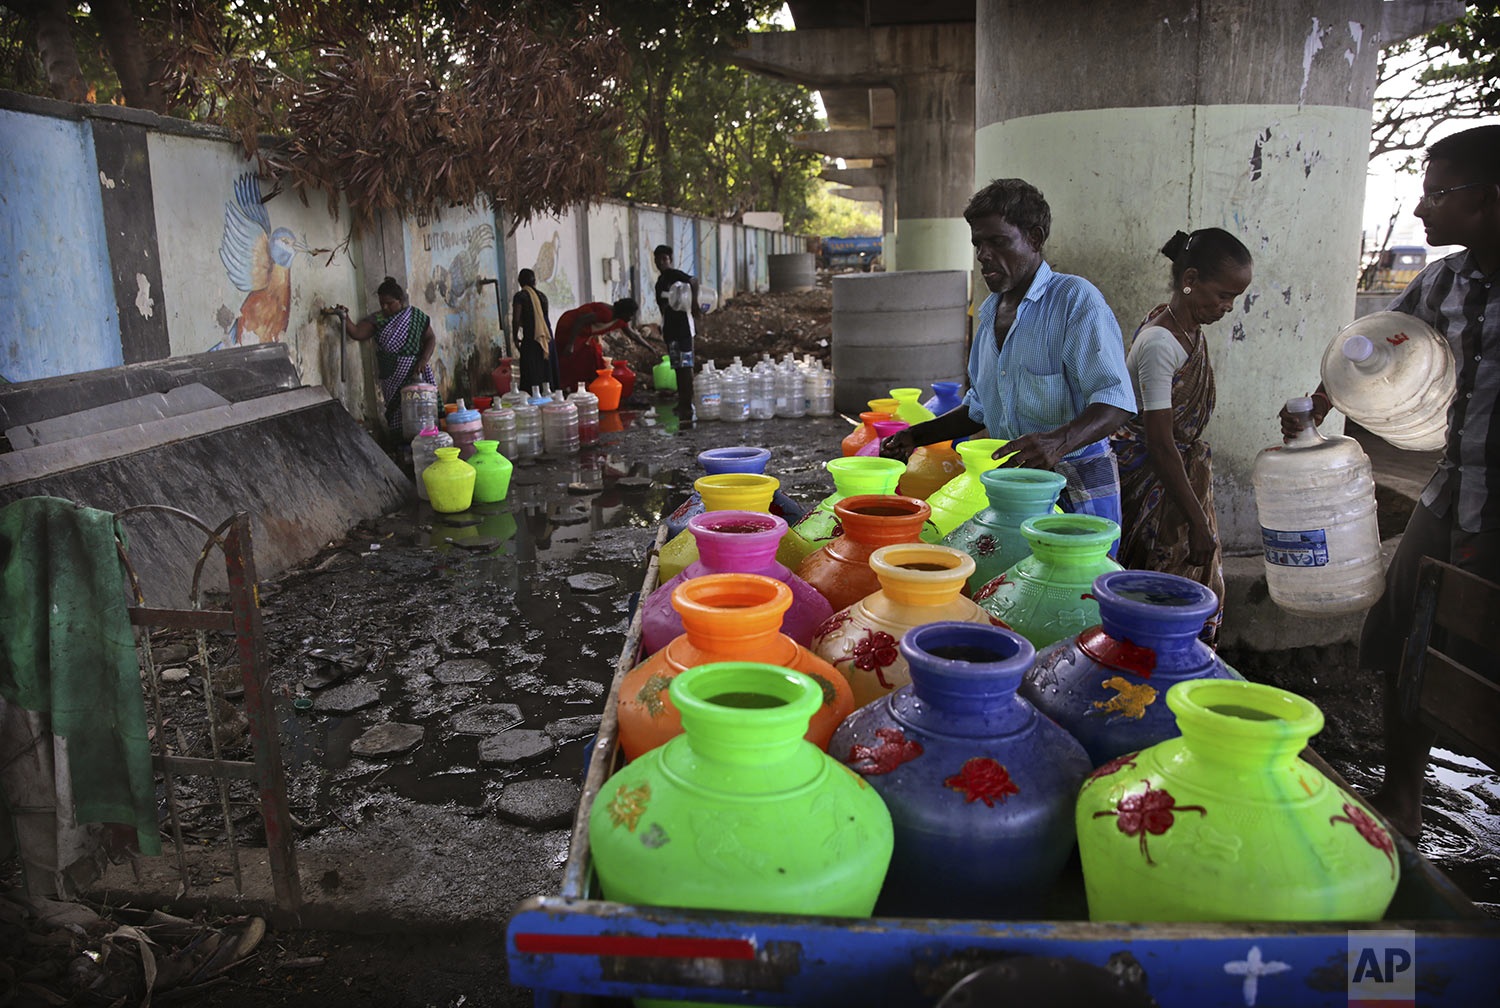 Indians fill drinking water from the taps of water filling depot in Chennai in Southern Indian state of Tamil Nadu, Monday, July 15, 2019. (AP Photo/Manish Swarup)